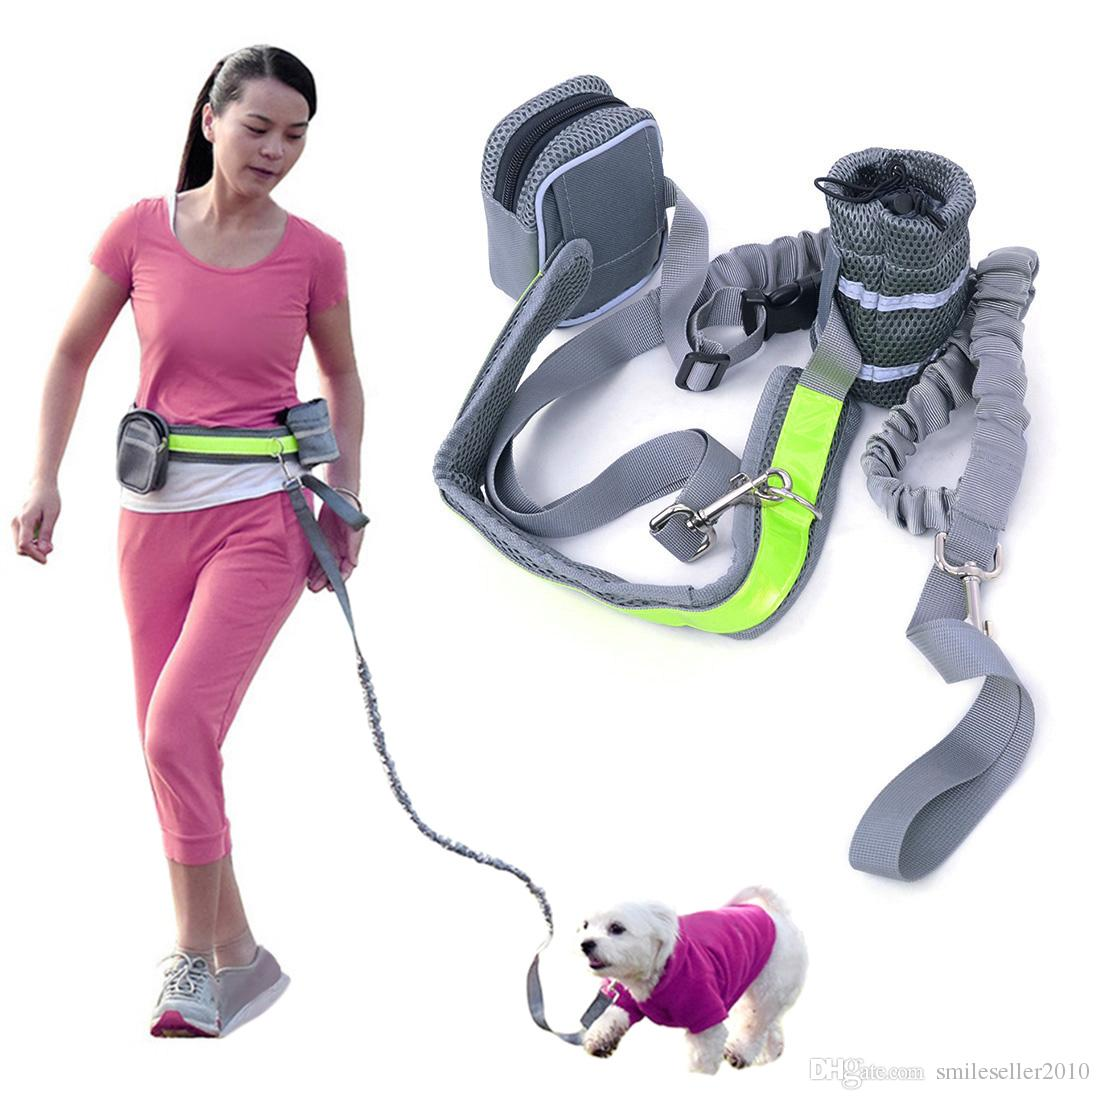 Elastic Waist Dog Leash Running Jogging Sport Dog Supplies Adjustable Nylon Dog Harness with Reflective Strip Pet Accessories JJ0579